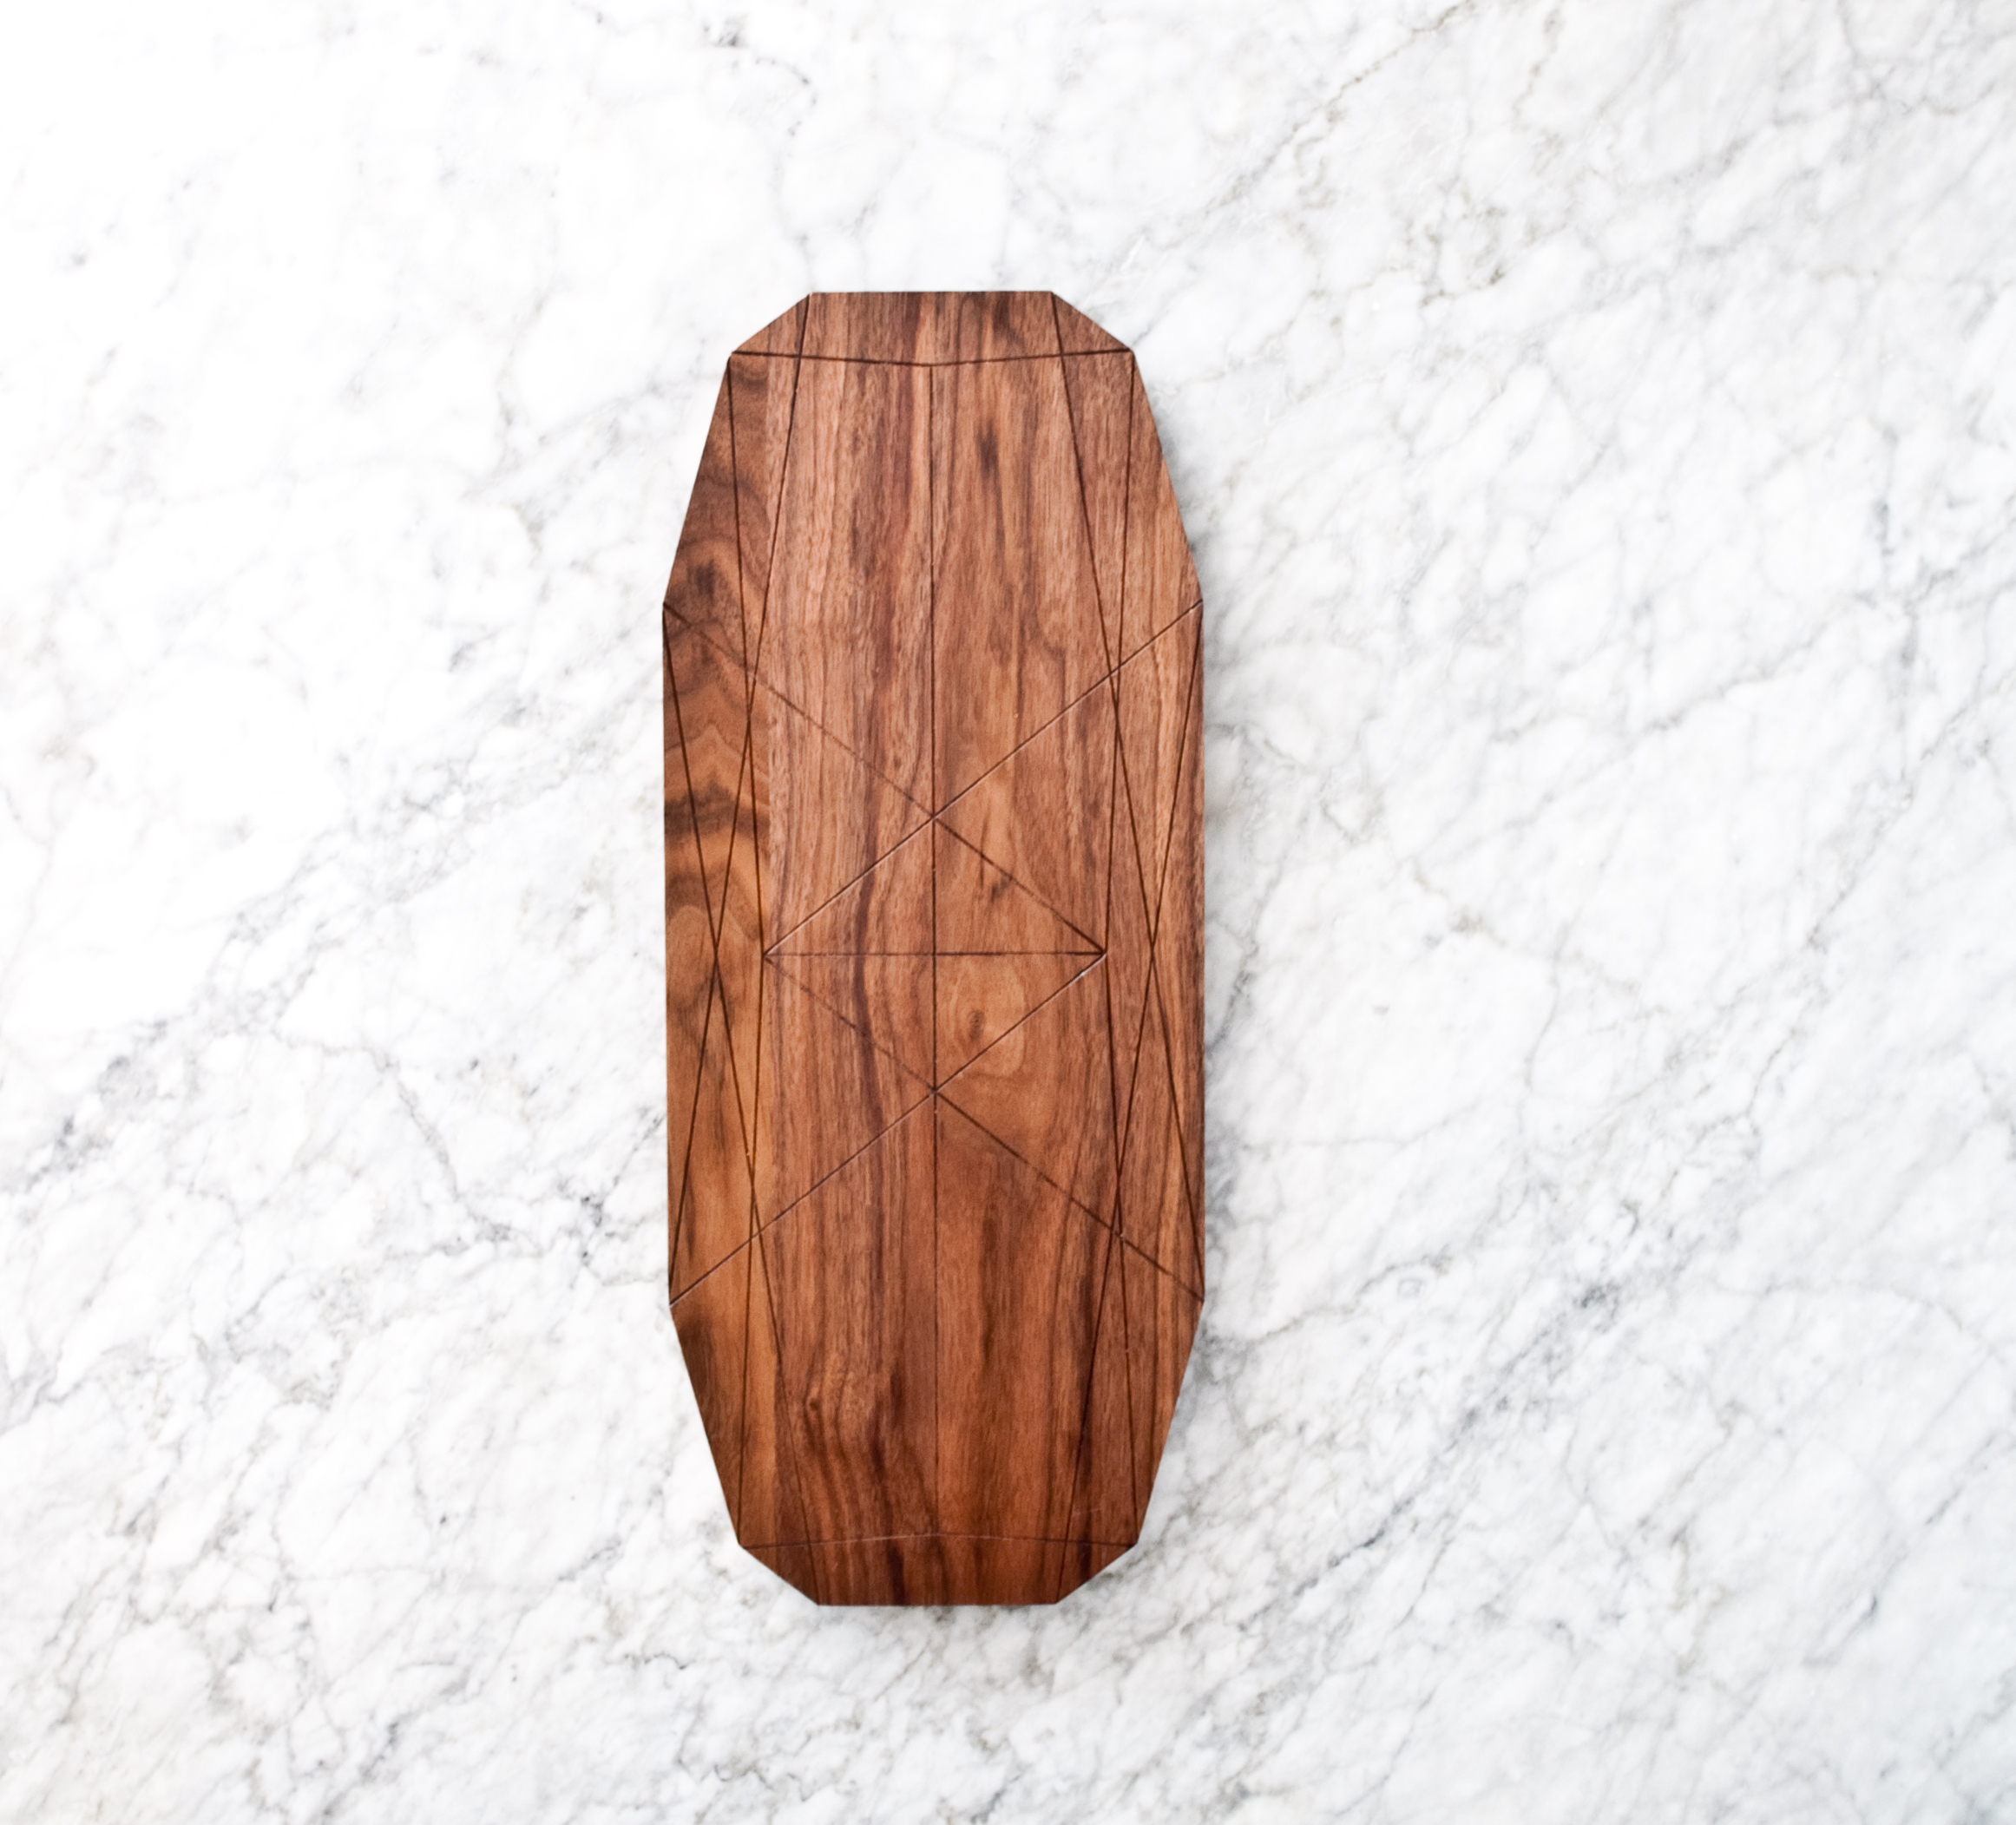 Long serving board crafted in rich walnut with geometric etchings